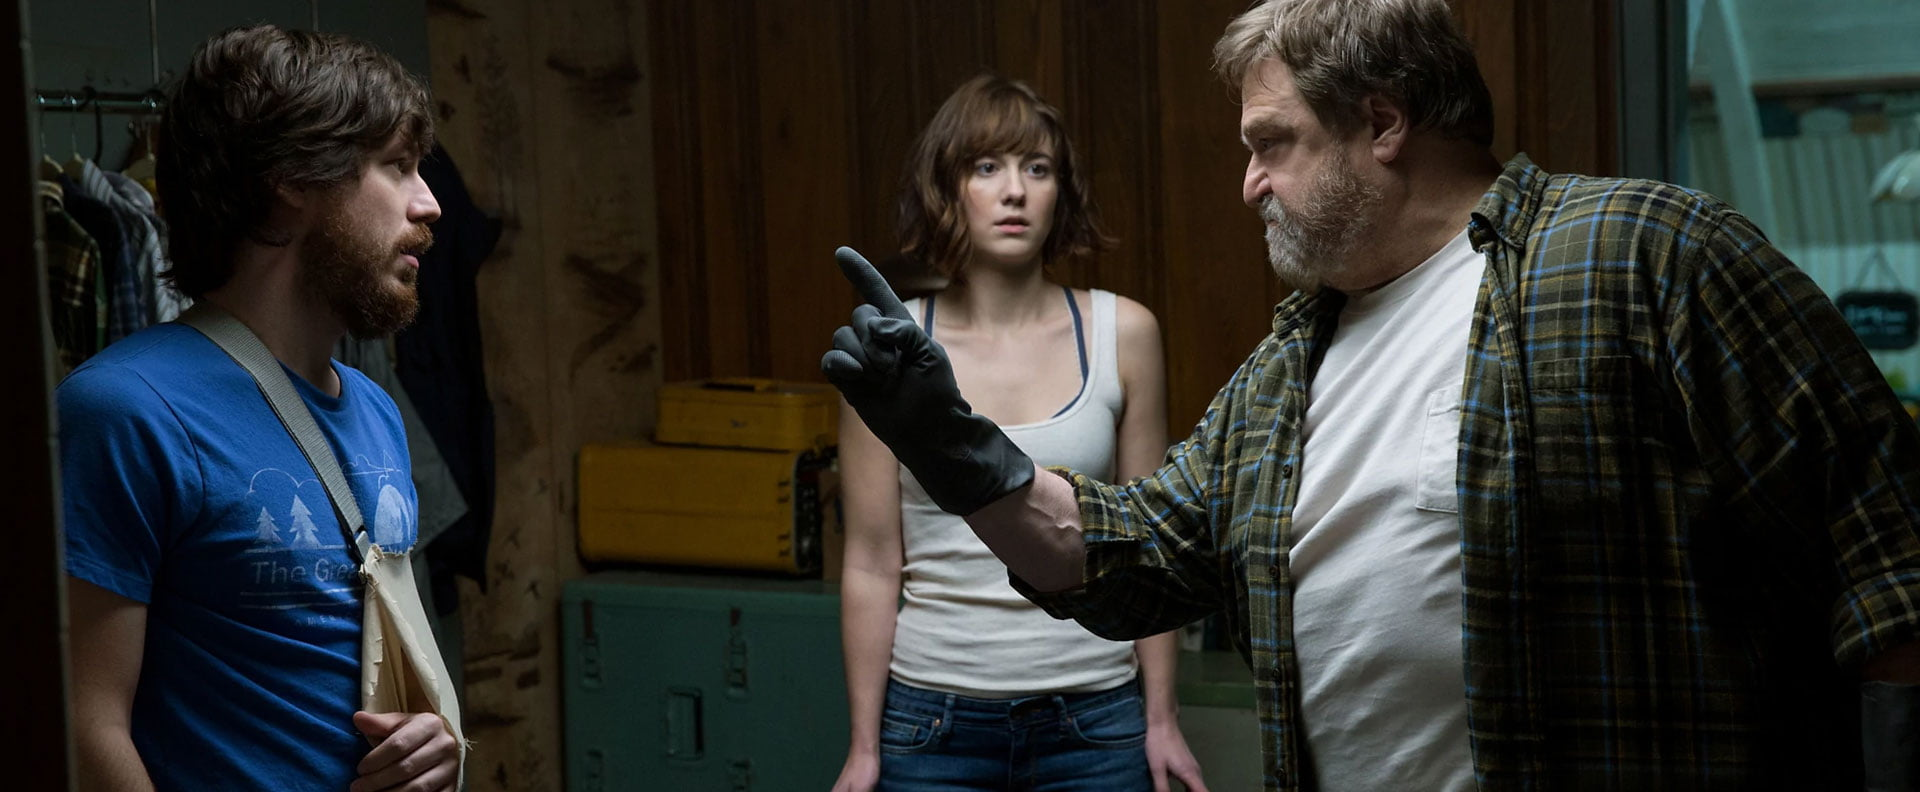 Вулиця Монстро, 10 / 10 Cloverfield Lane (2016)